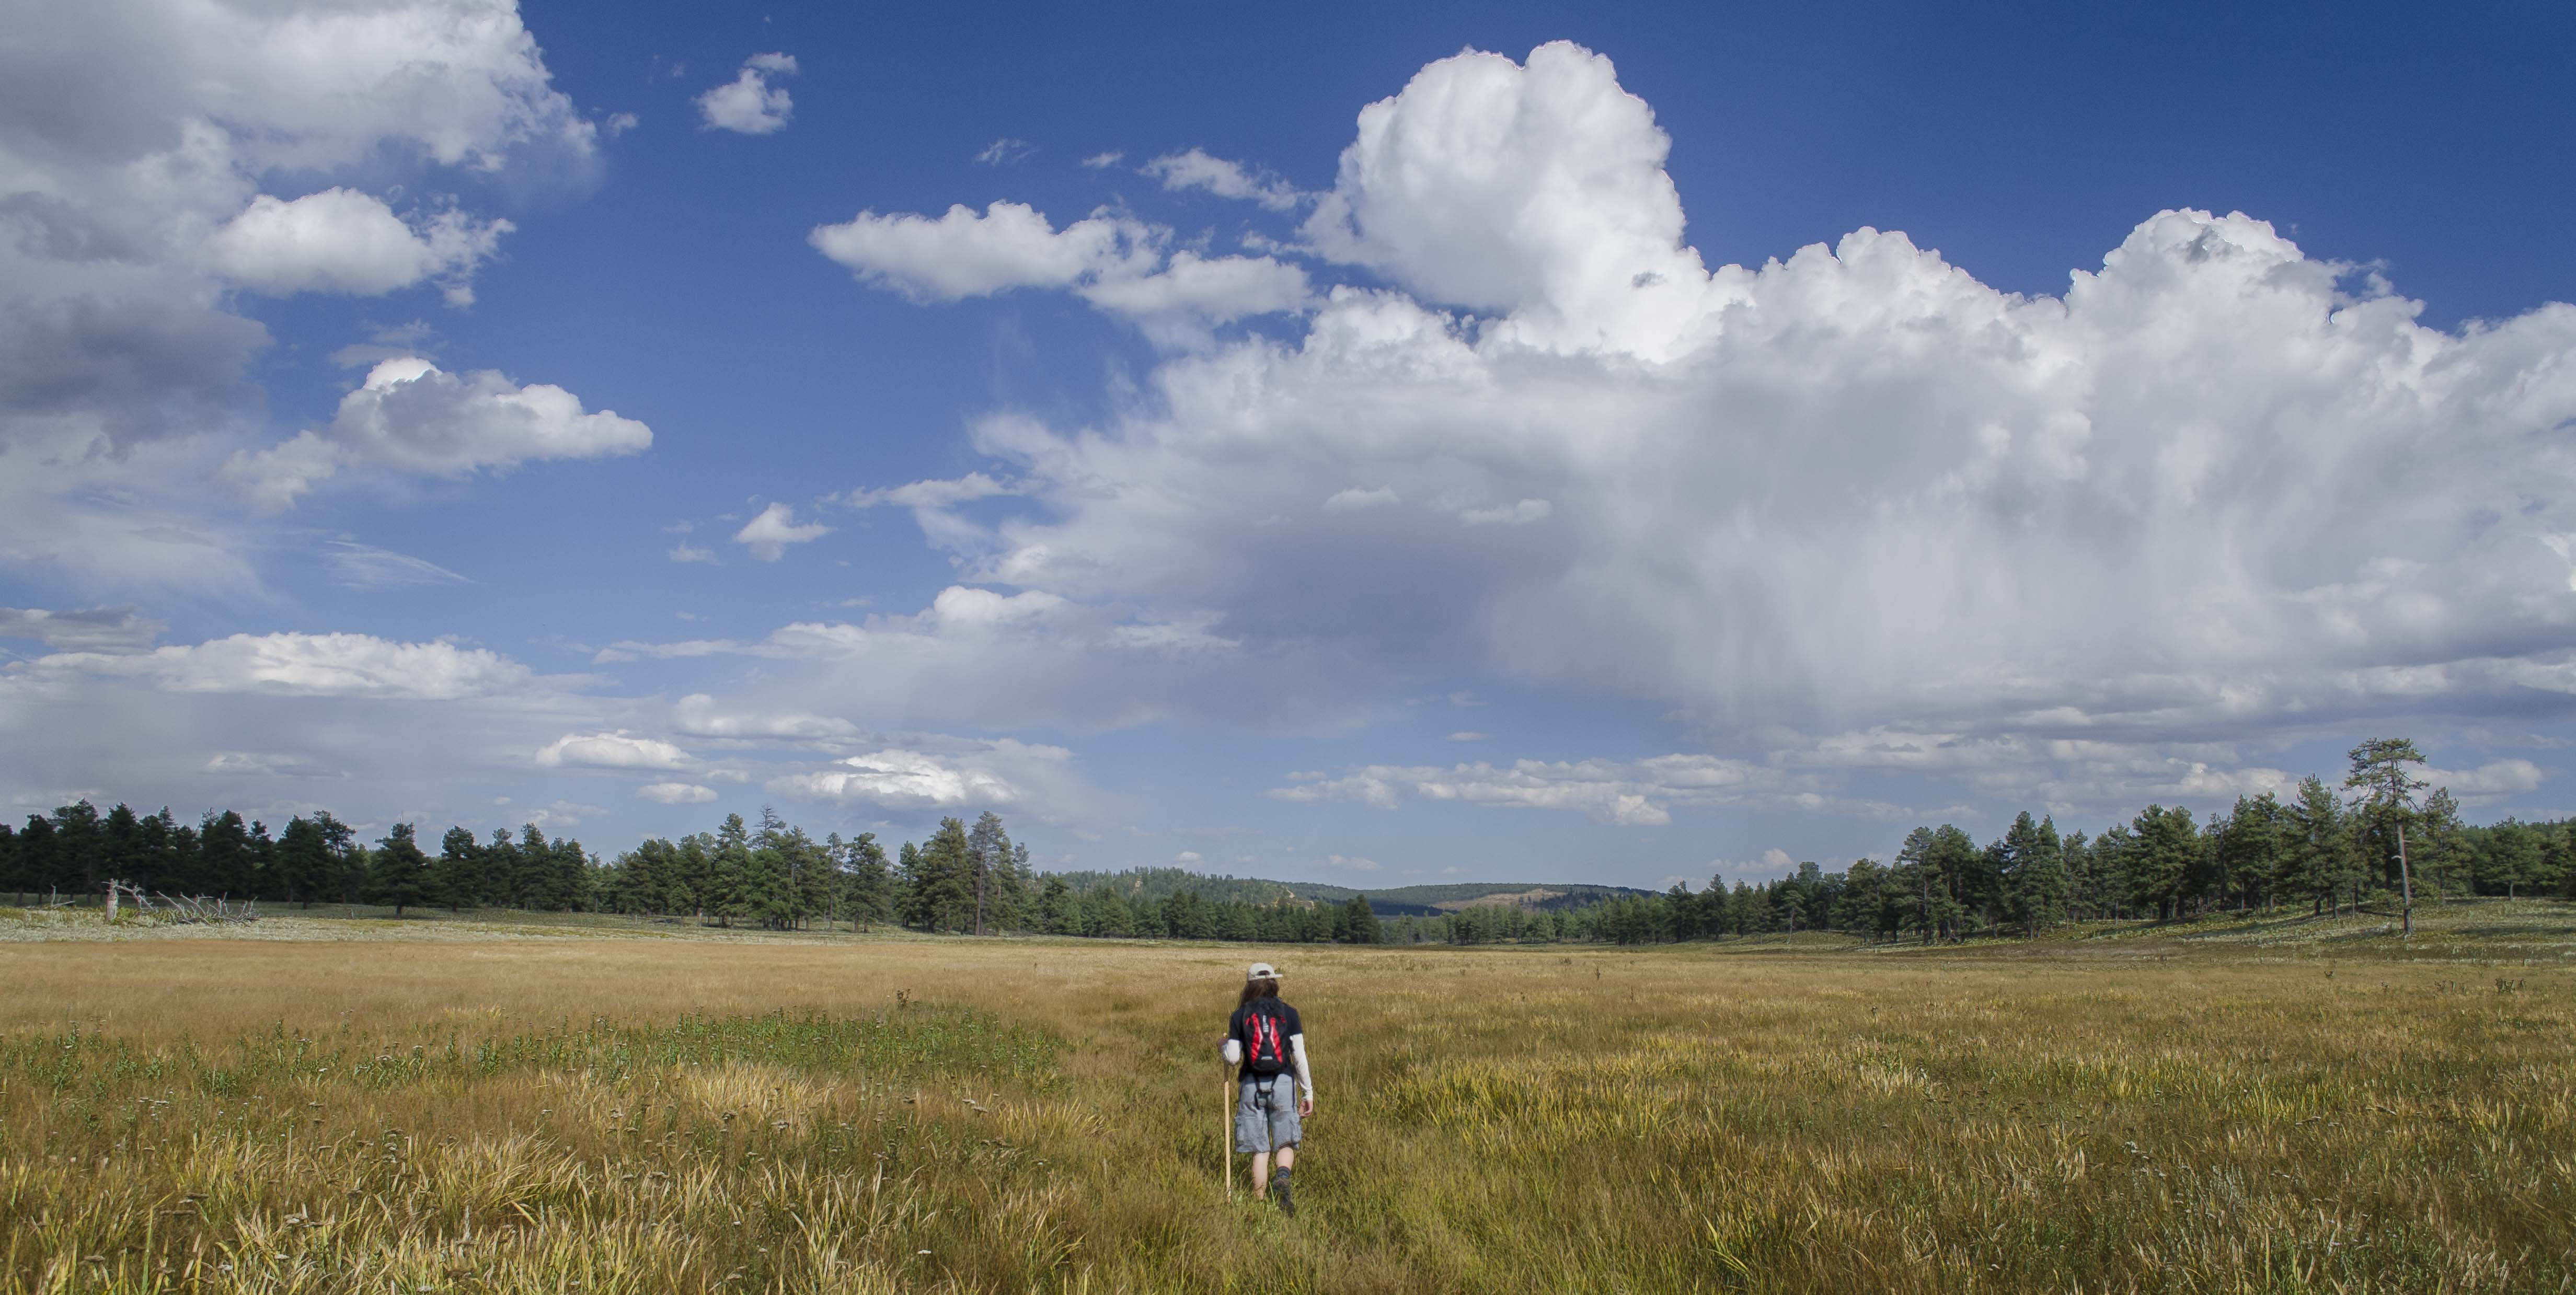 World Wetland Day - the Wetland Jewels of Northern New Mexico